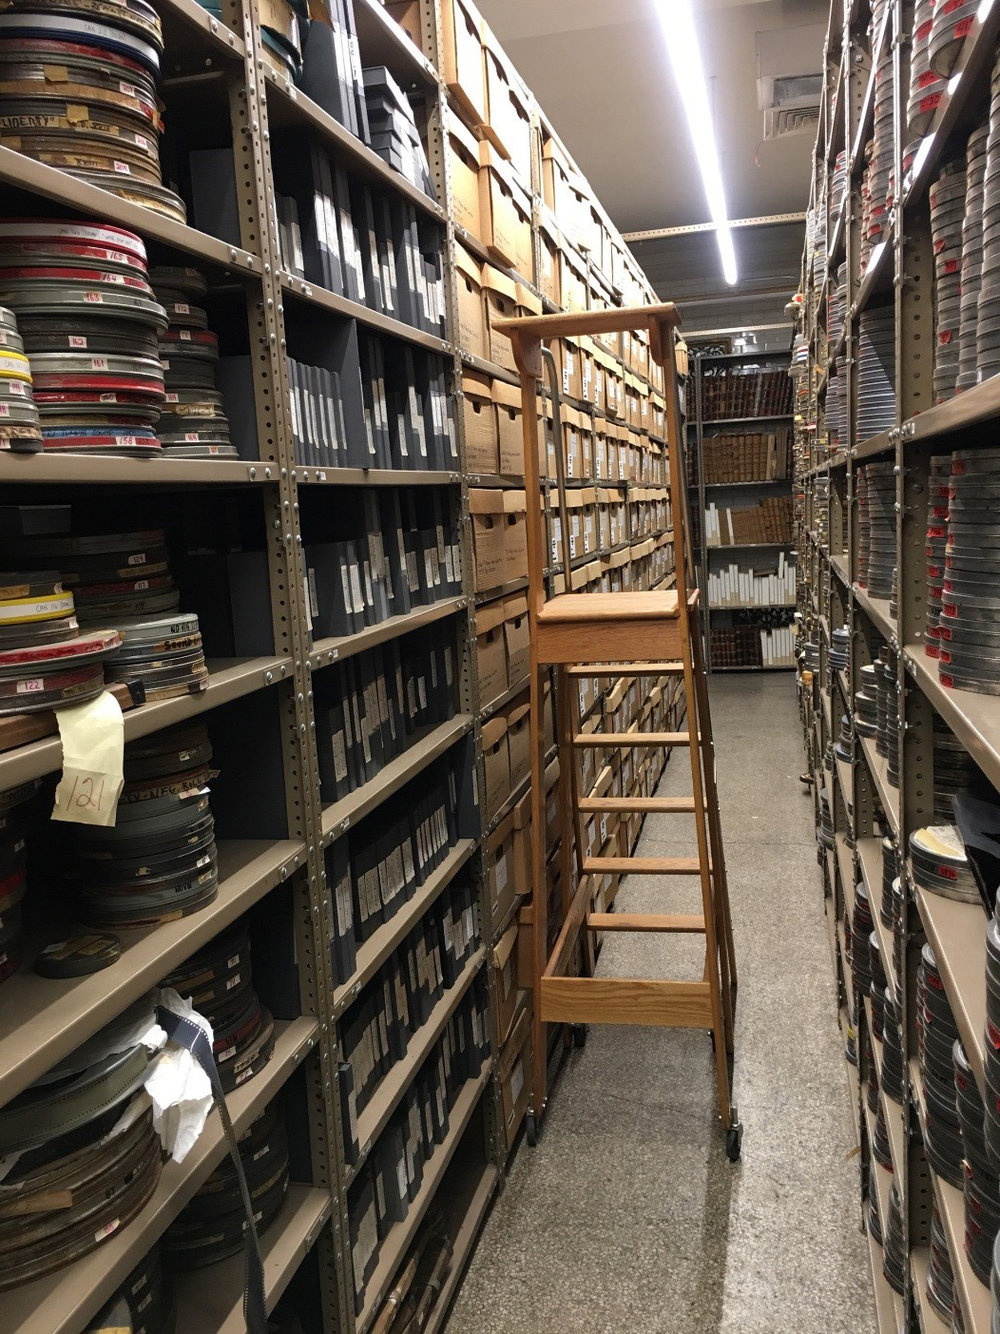 The audio-visual collection on the shelves of the NYC Municipal Archives.